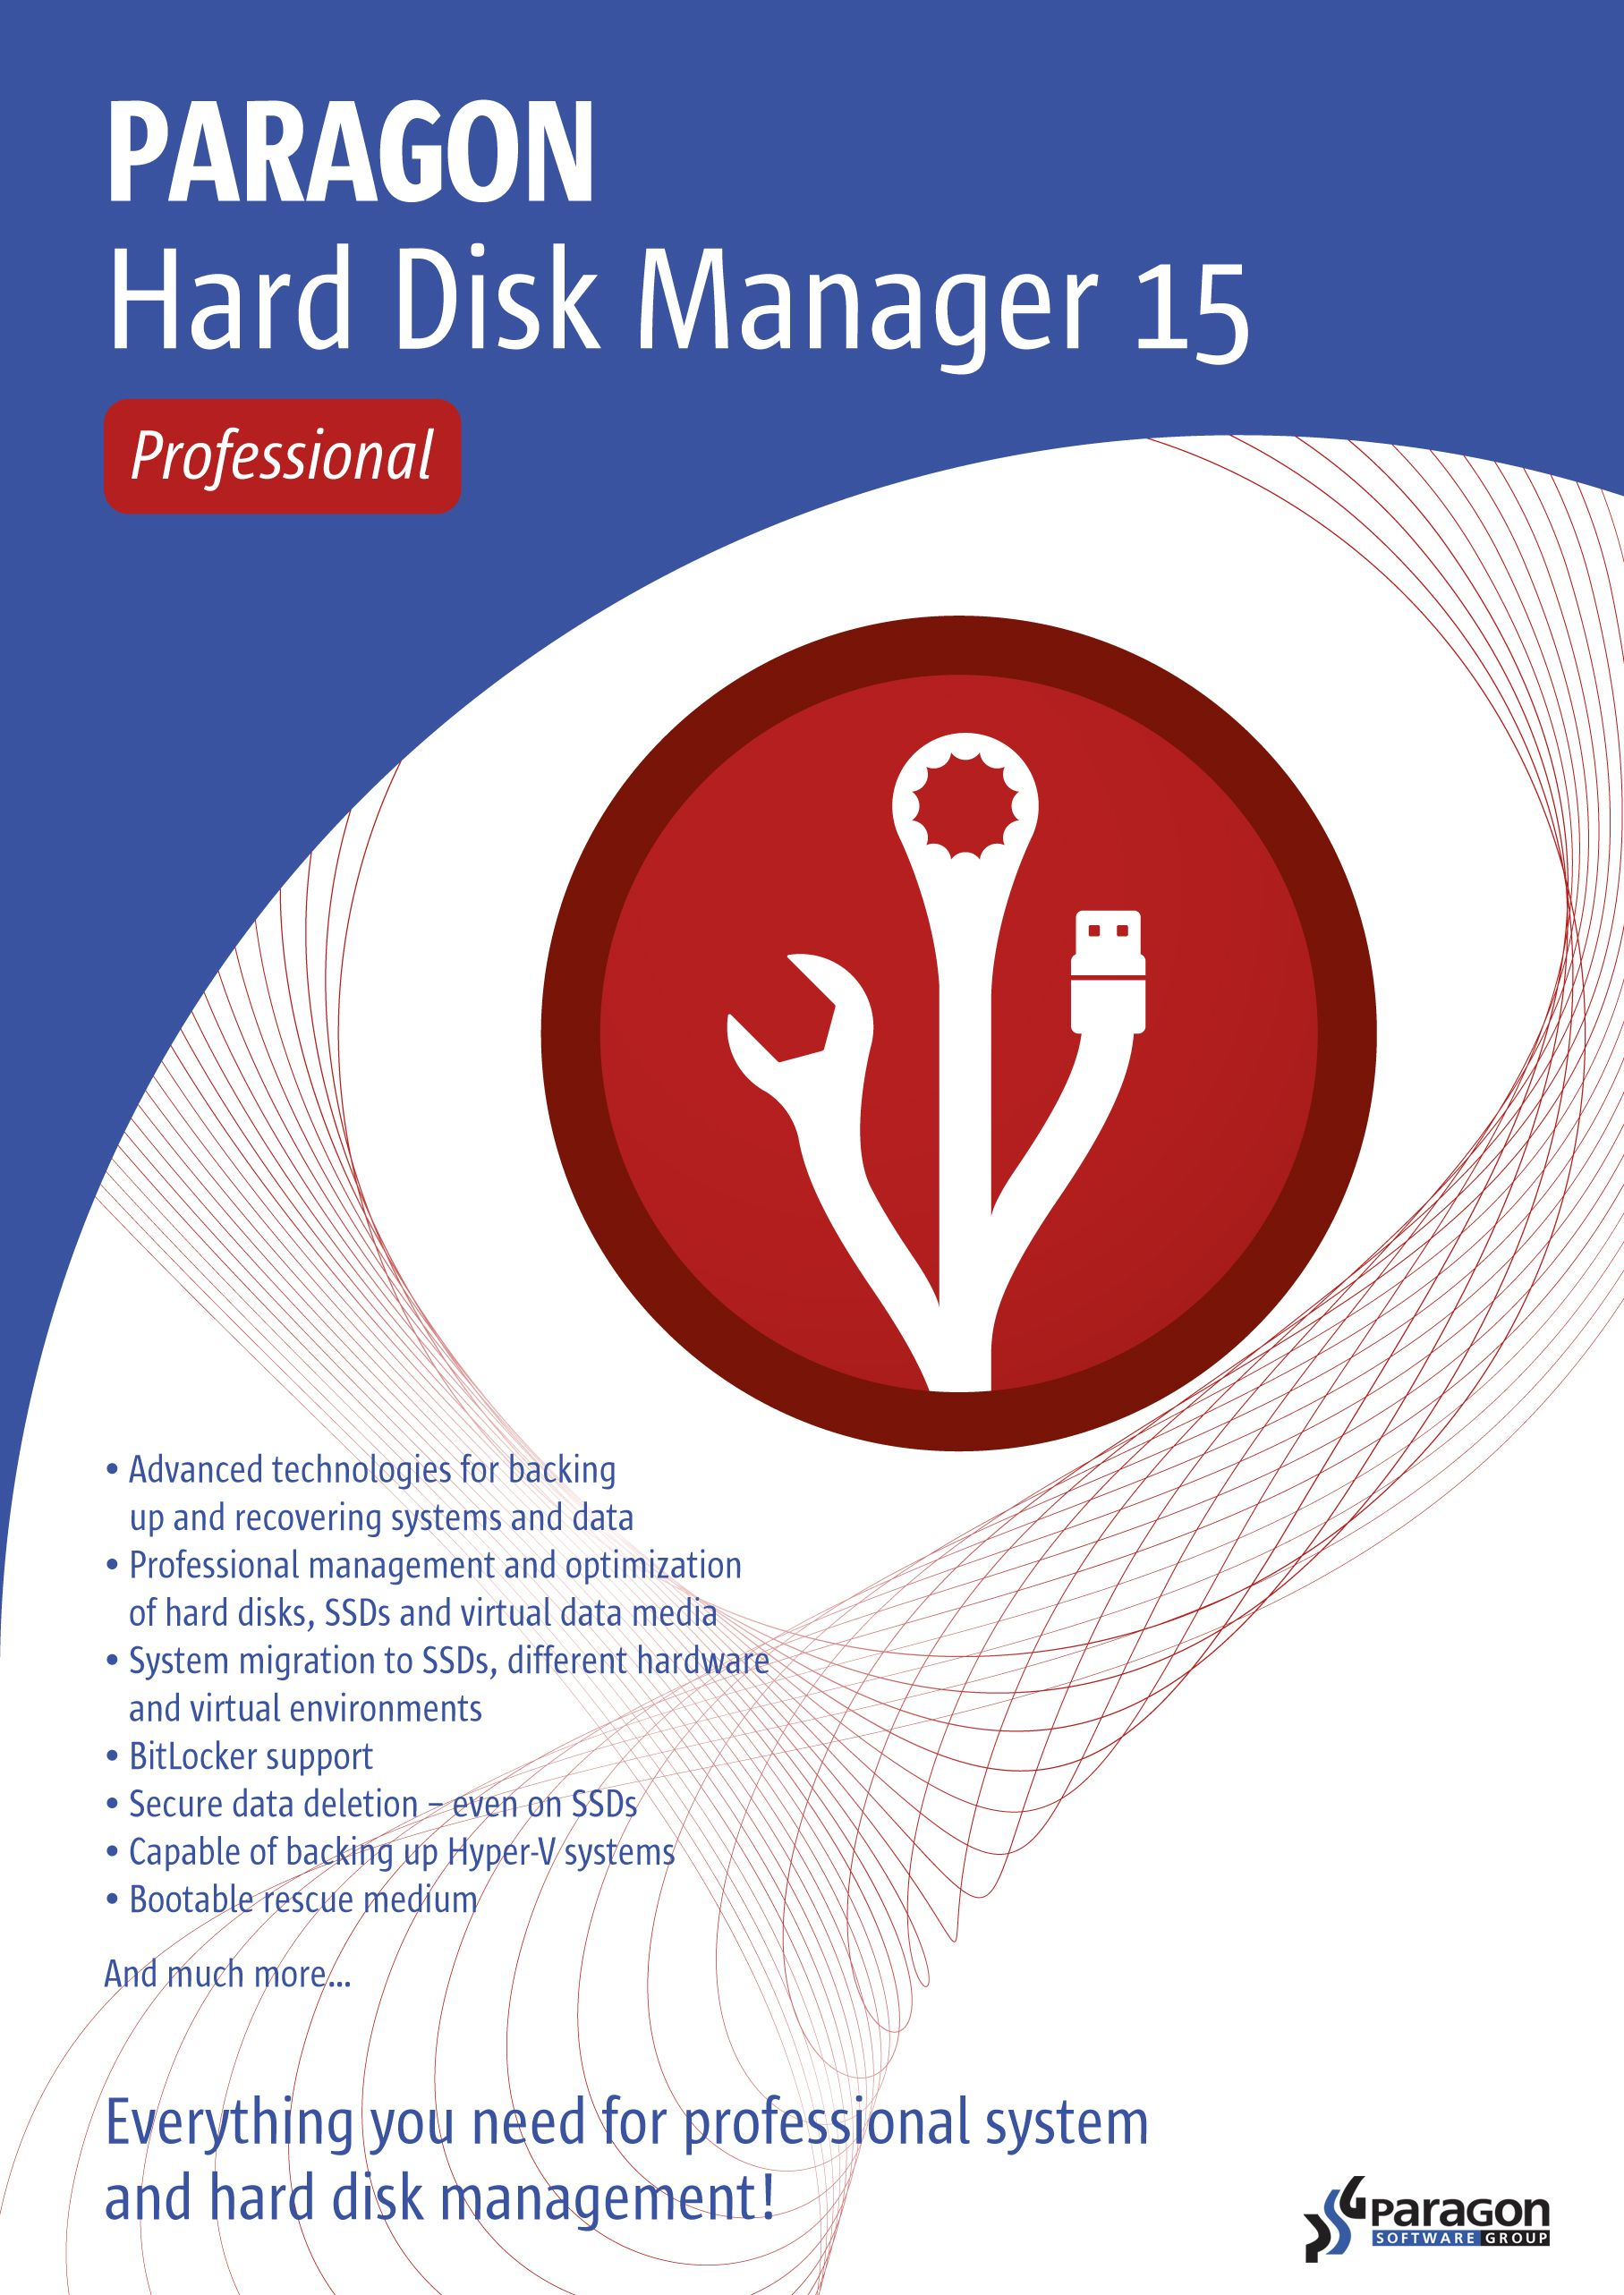 Paragon Hard Disk Manager 15 Professional - WIN 10|8|7 [Download]